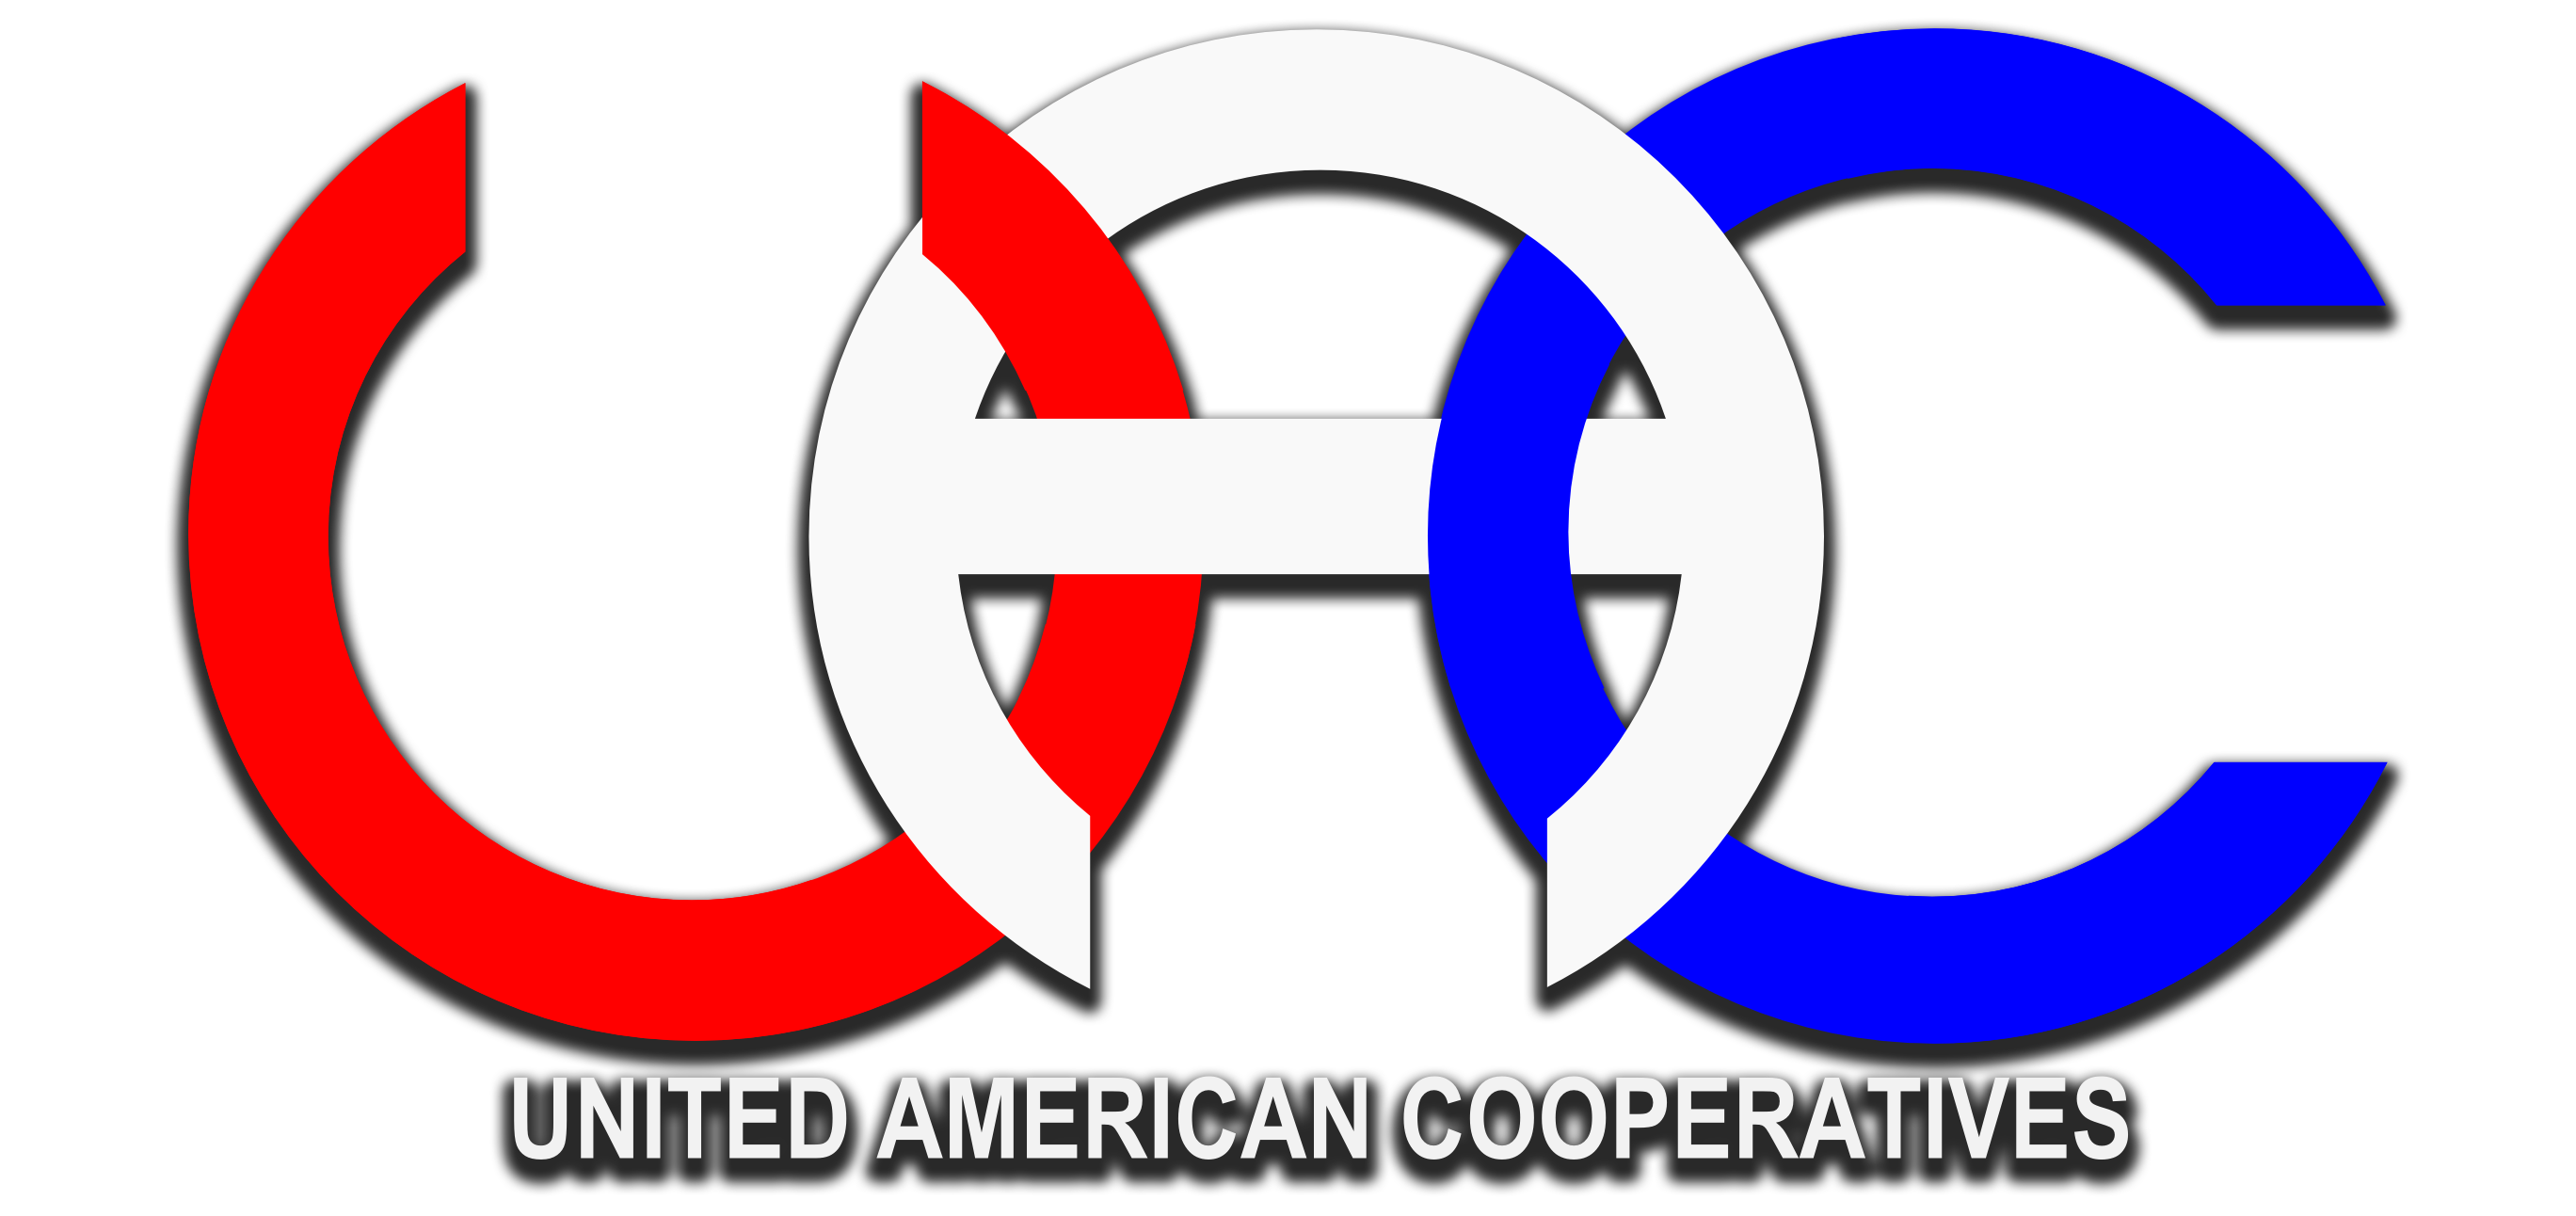 United American Cooperatives